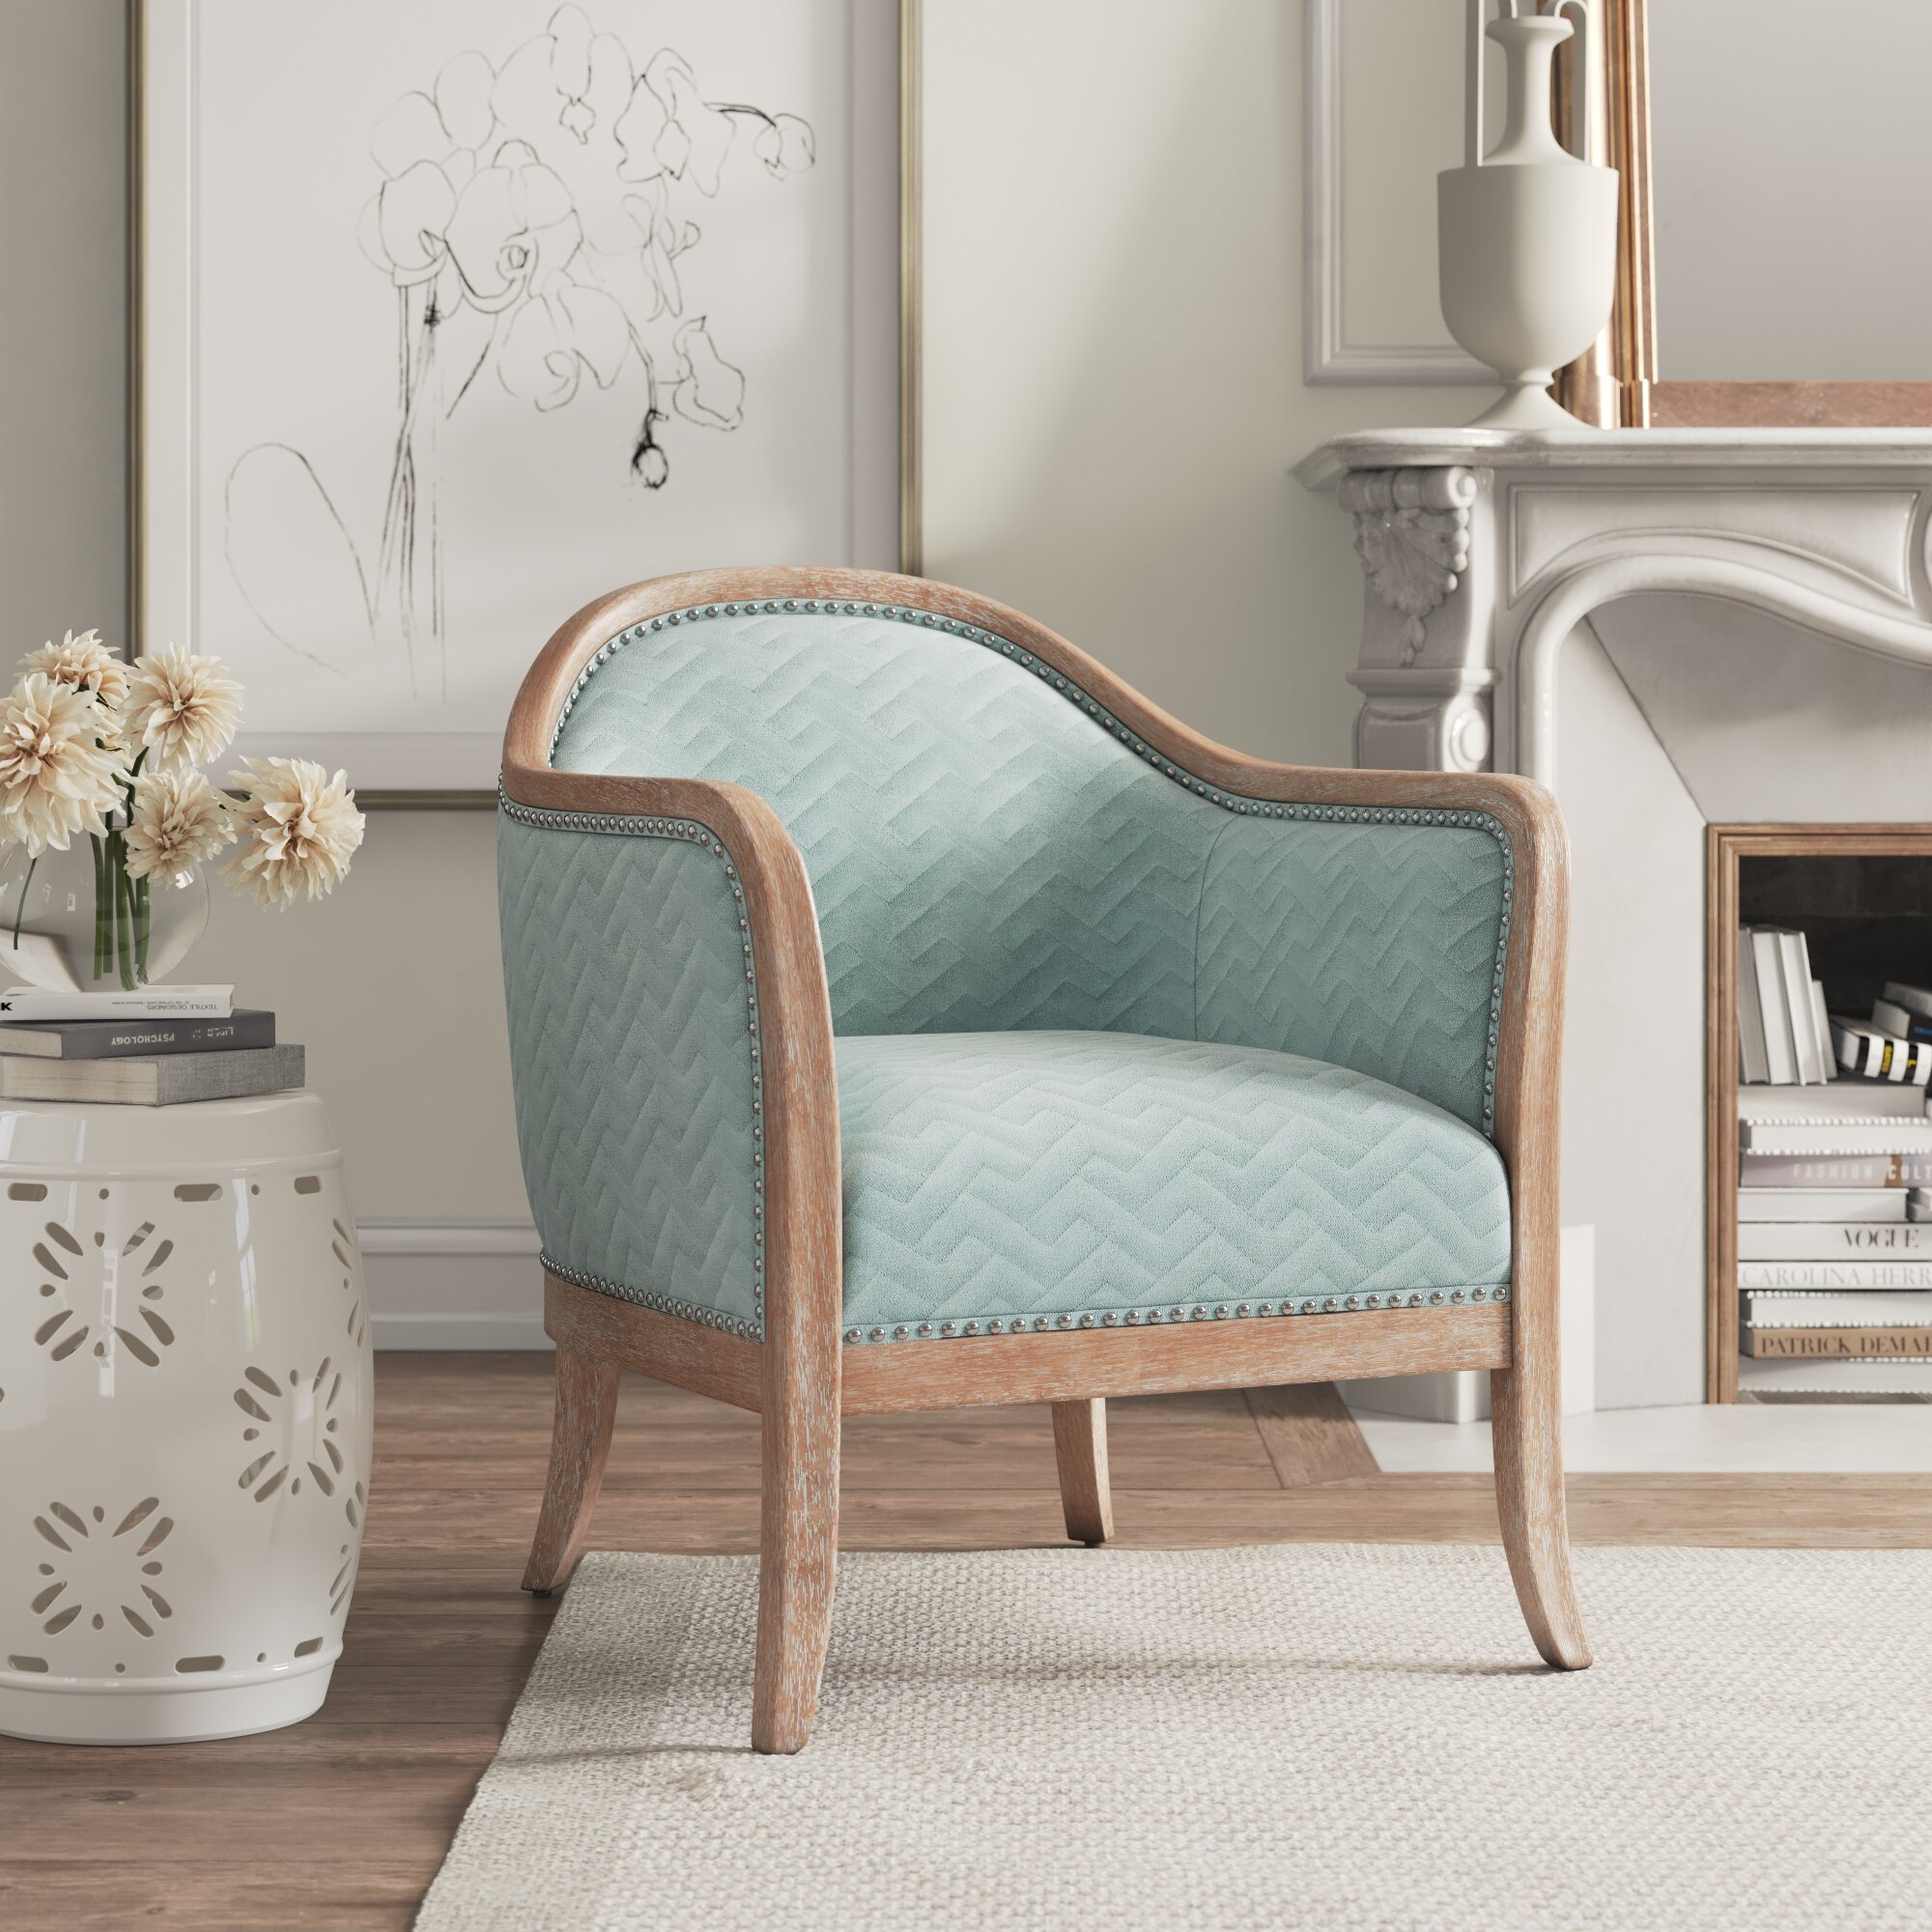 Barrel Light Wood Accent Chairs You Ll Love In 2021 Wayfair